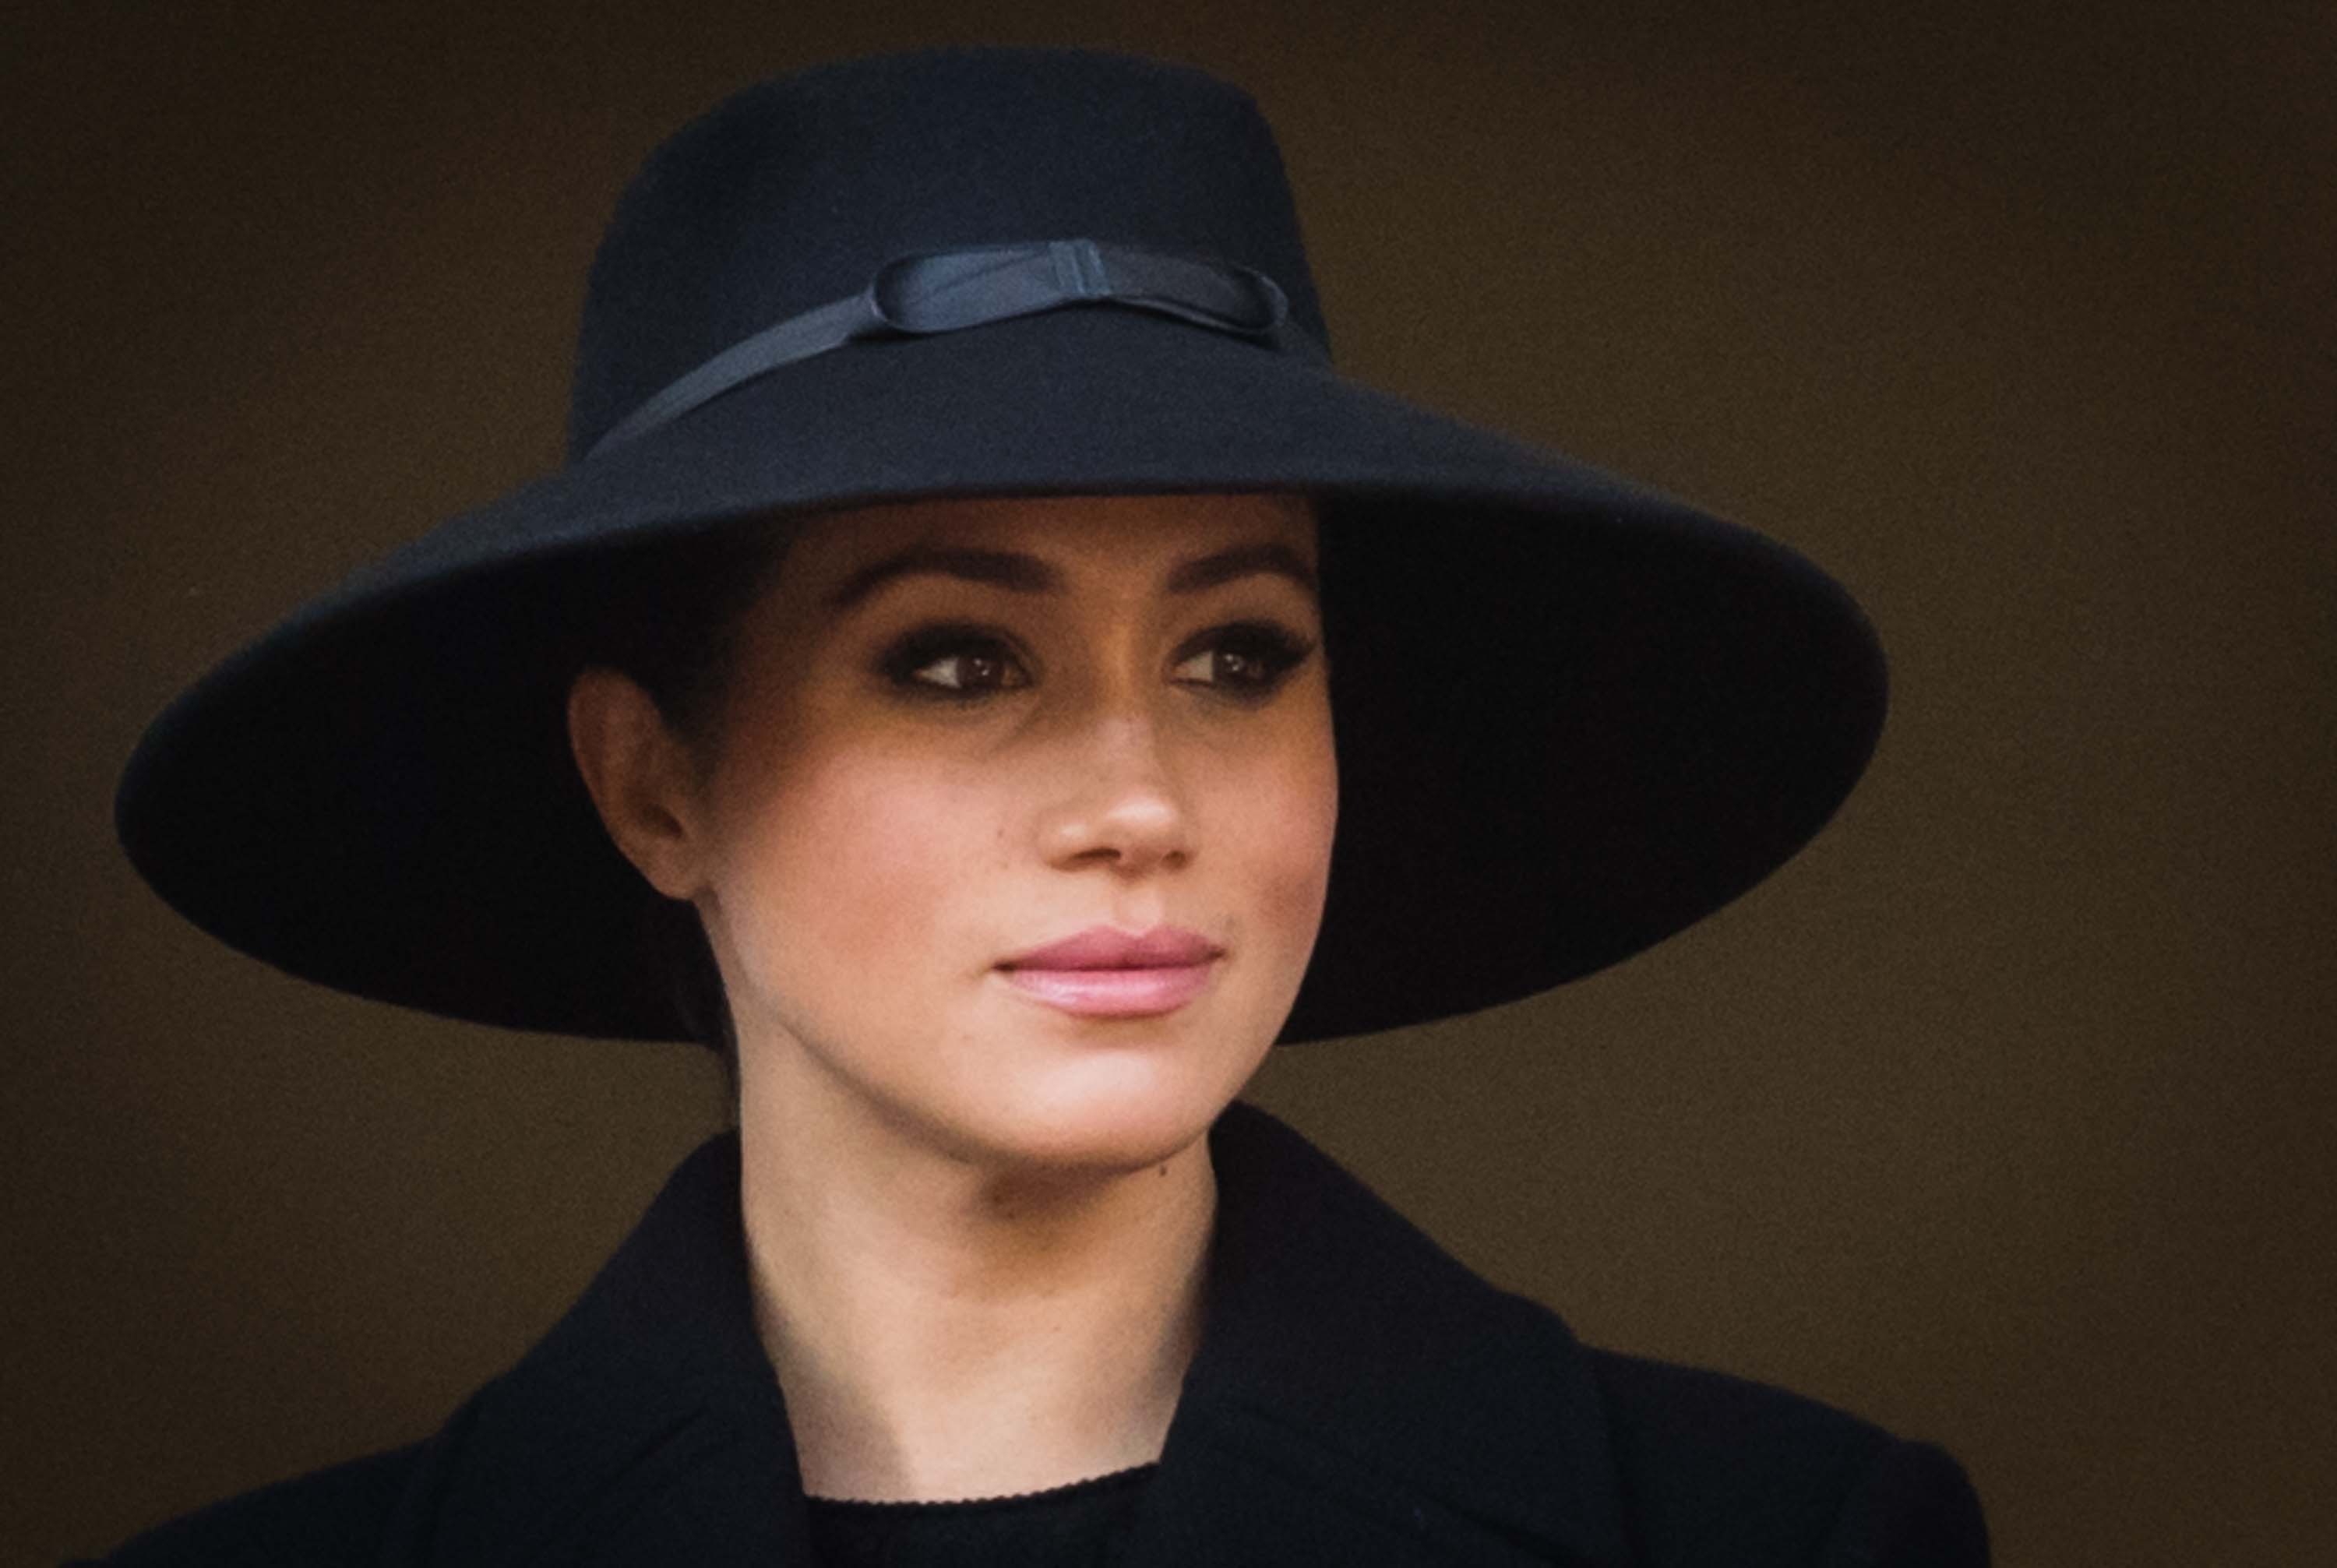 Meghan, Duchess of Sussex is pictured in November 2019, in London, England.